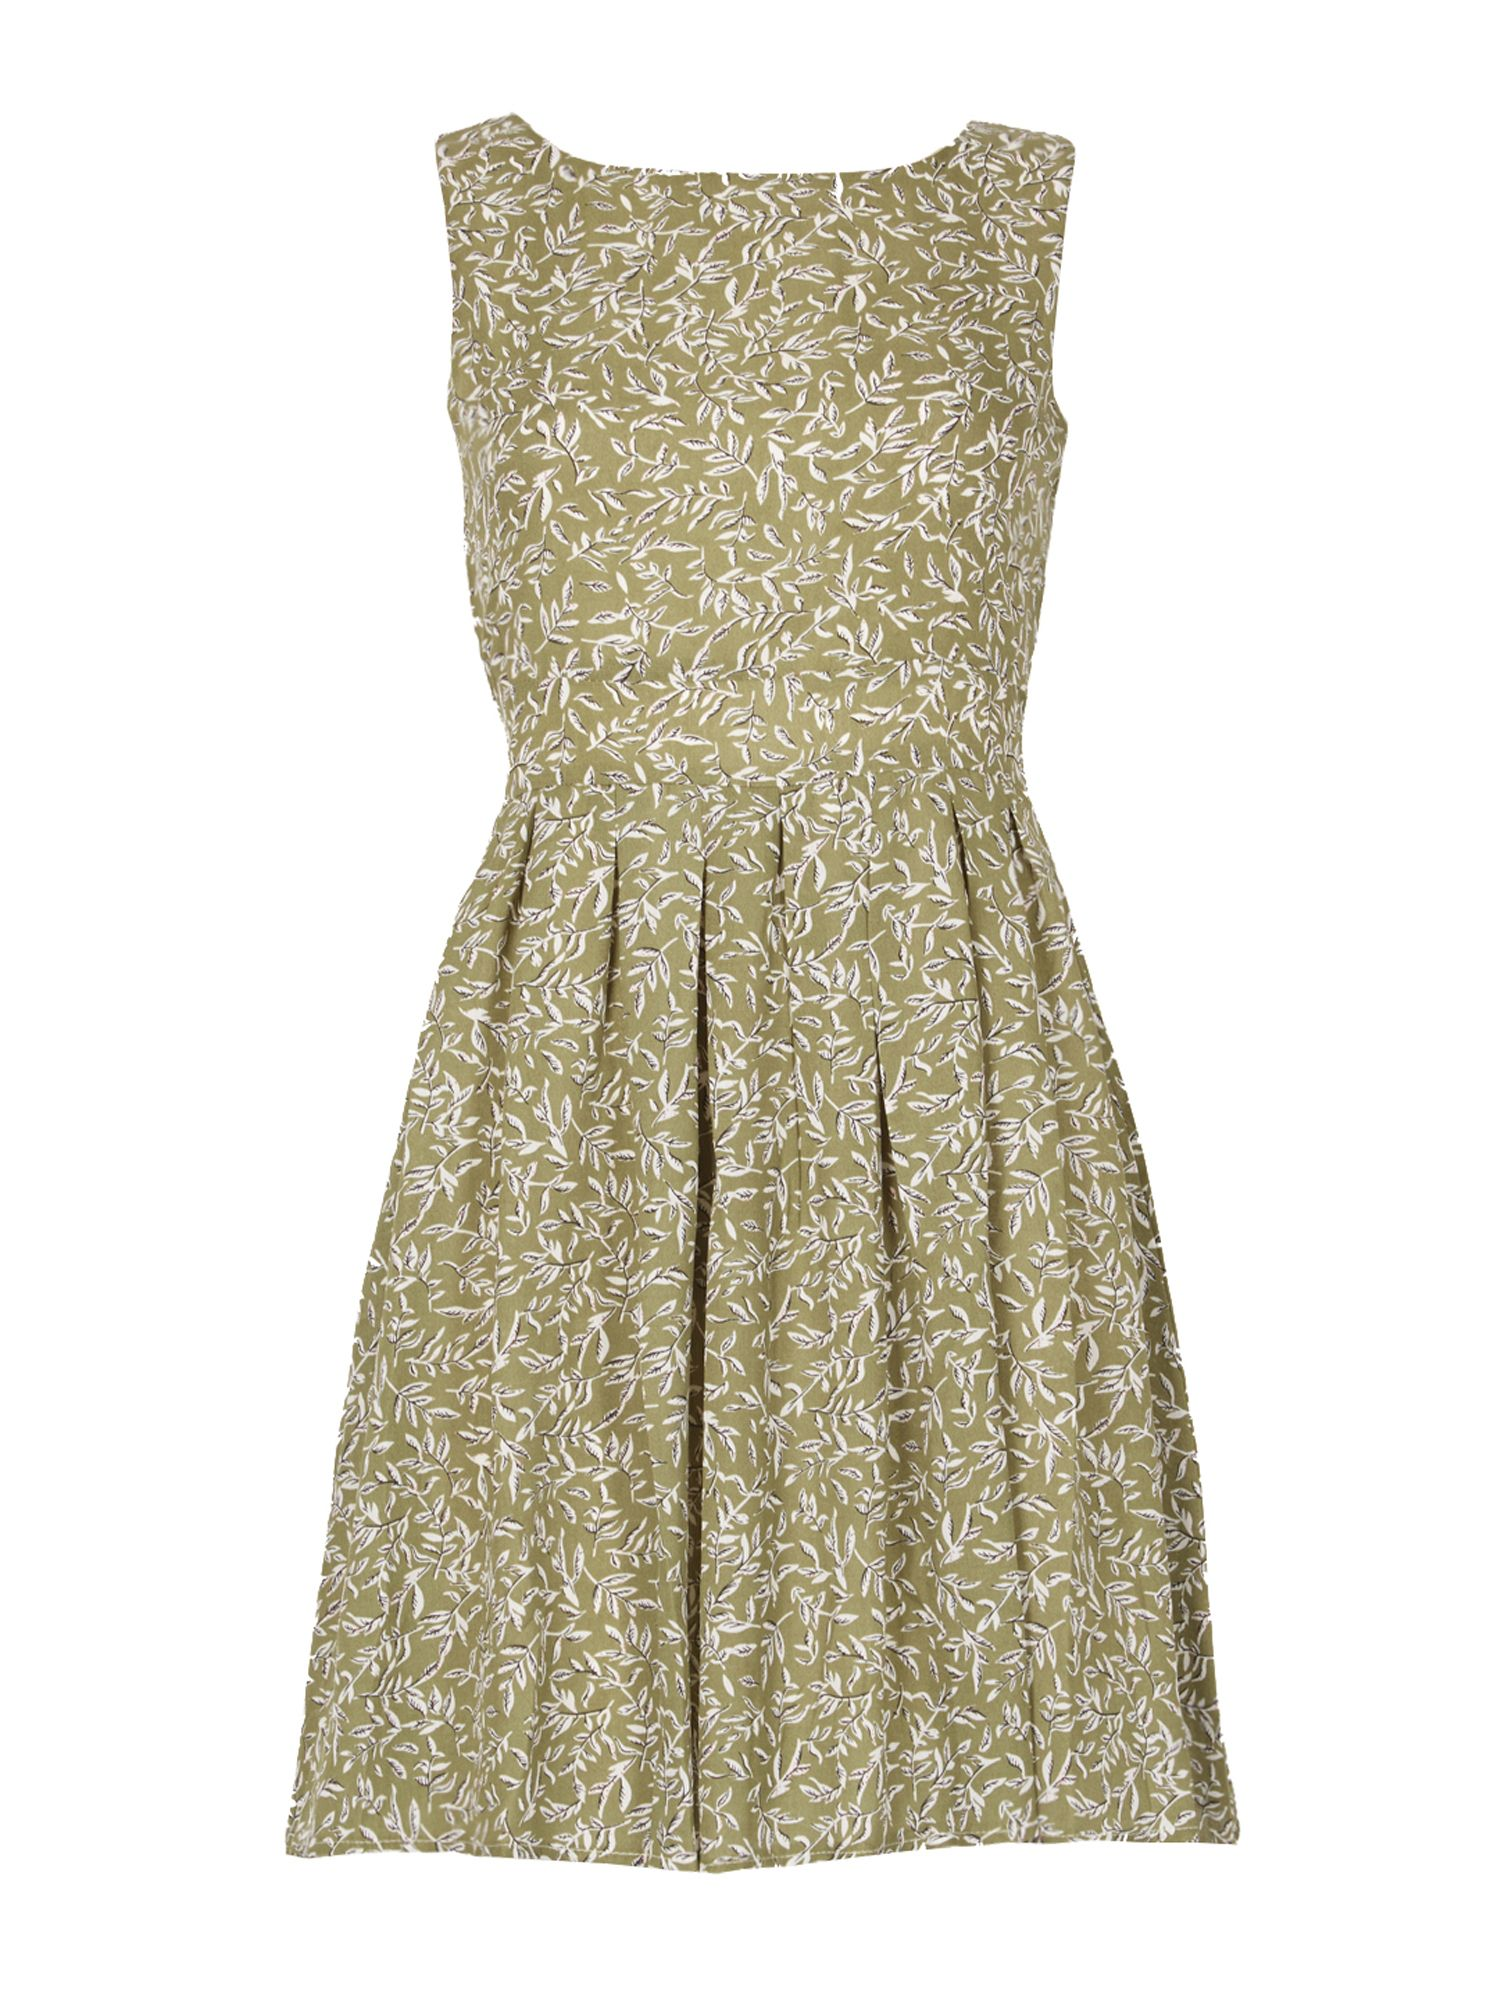 TENKI Sleeveless Leaf Print Skater Dress, Green